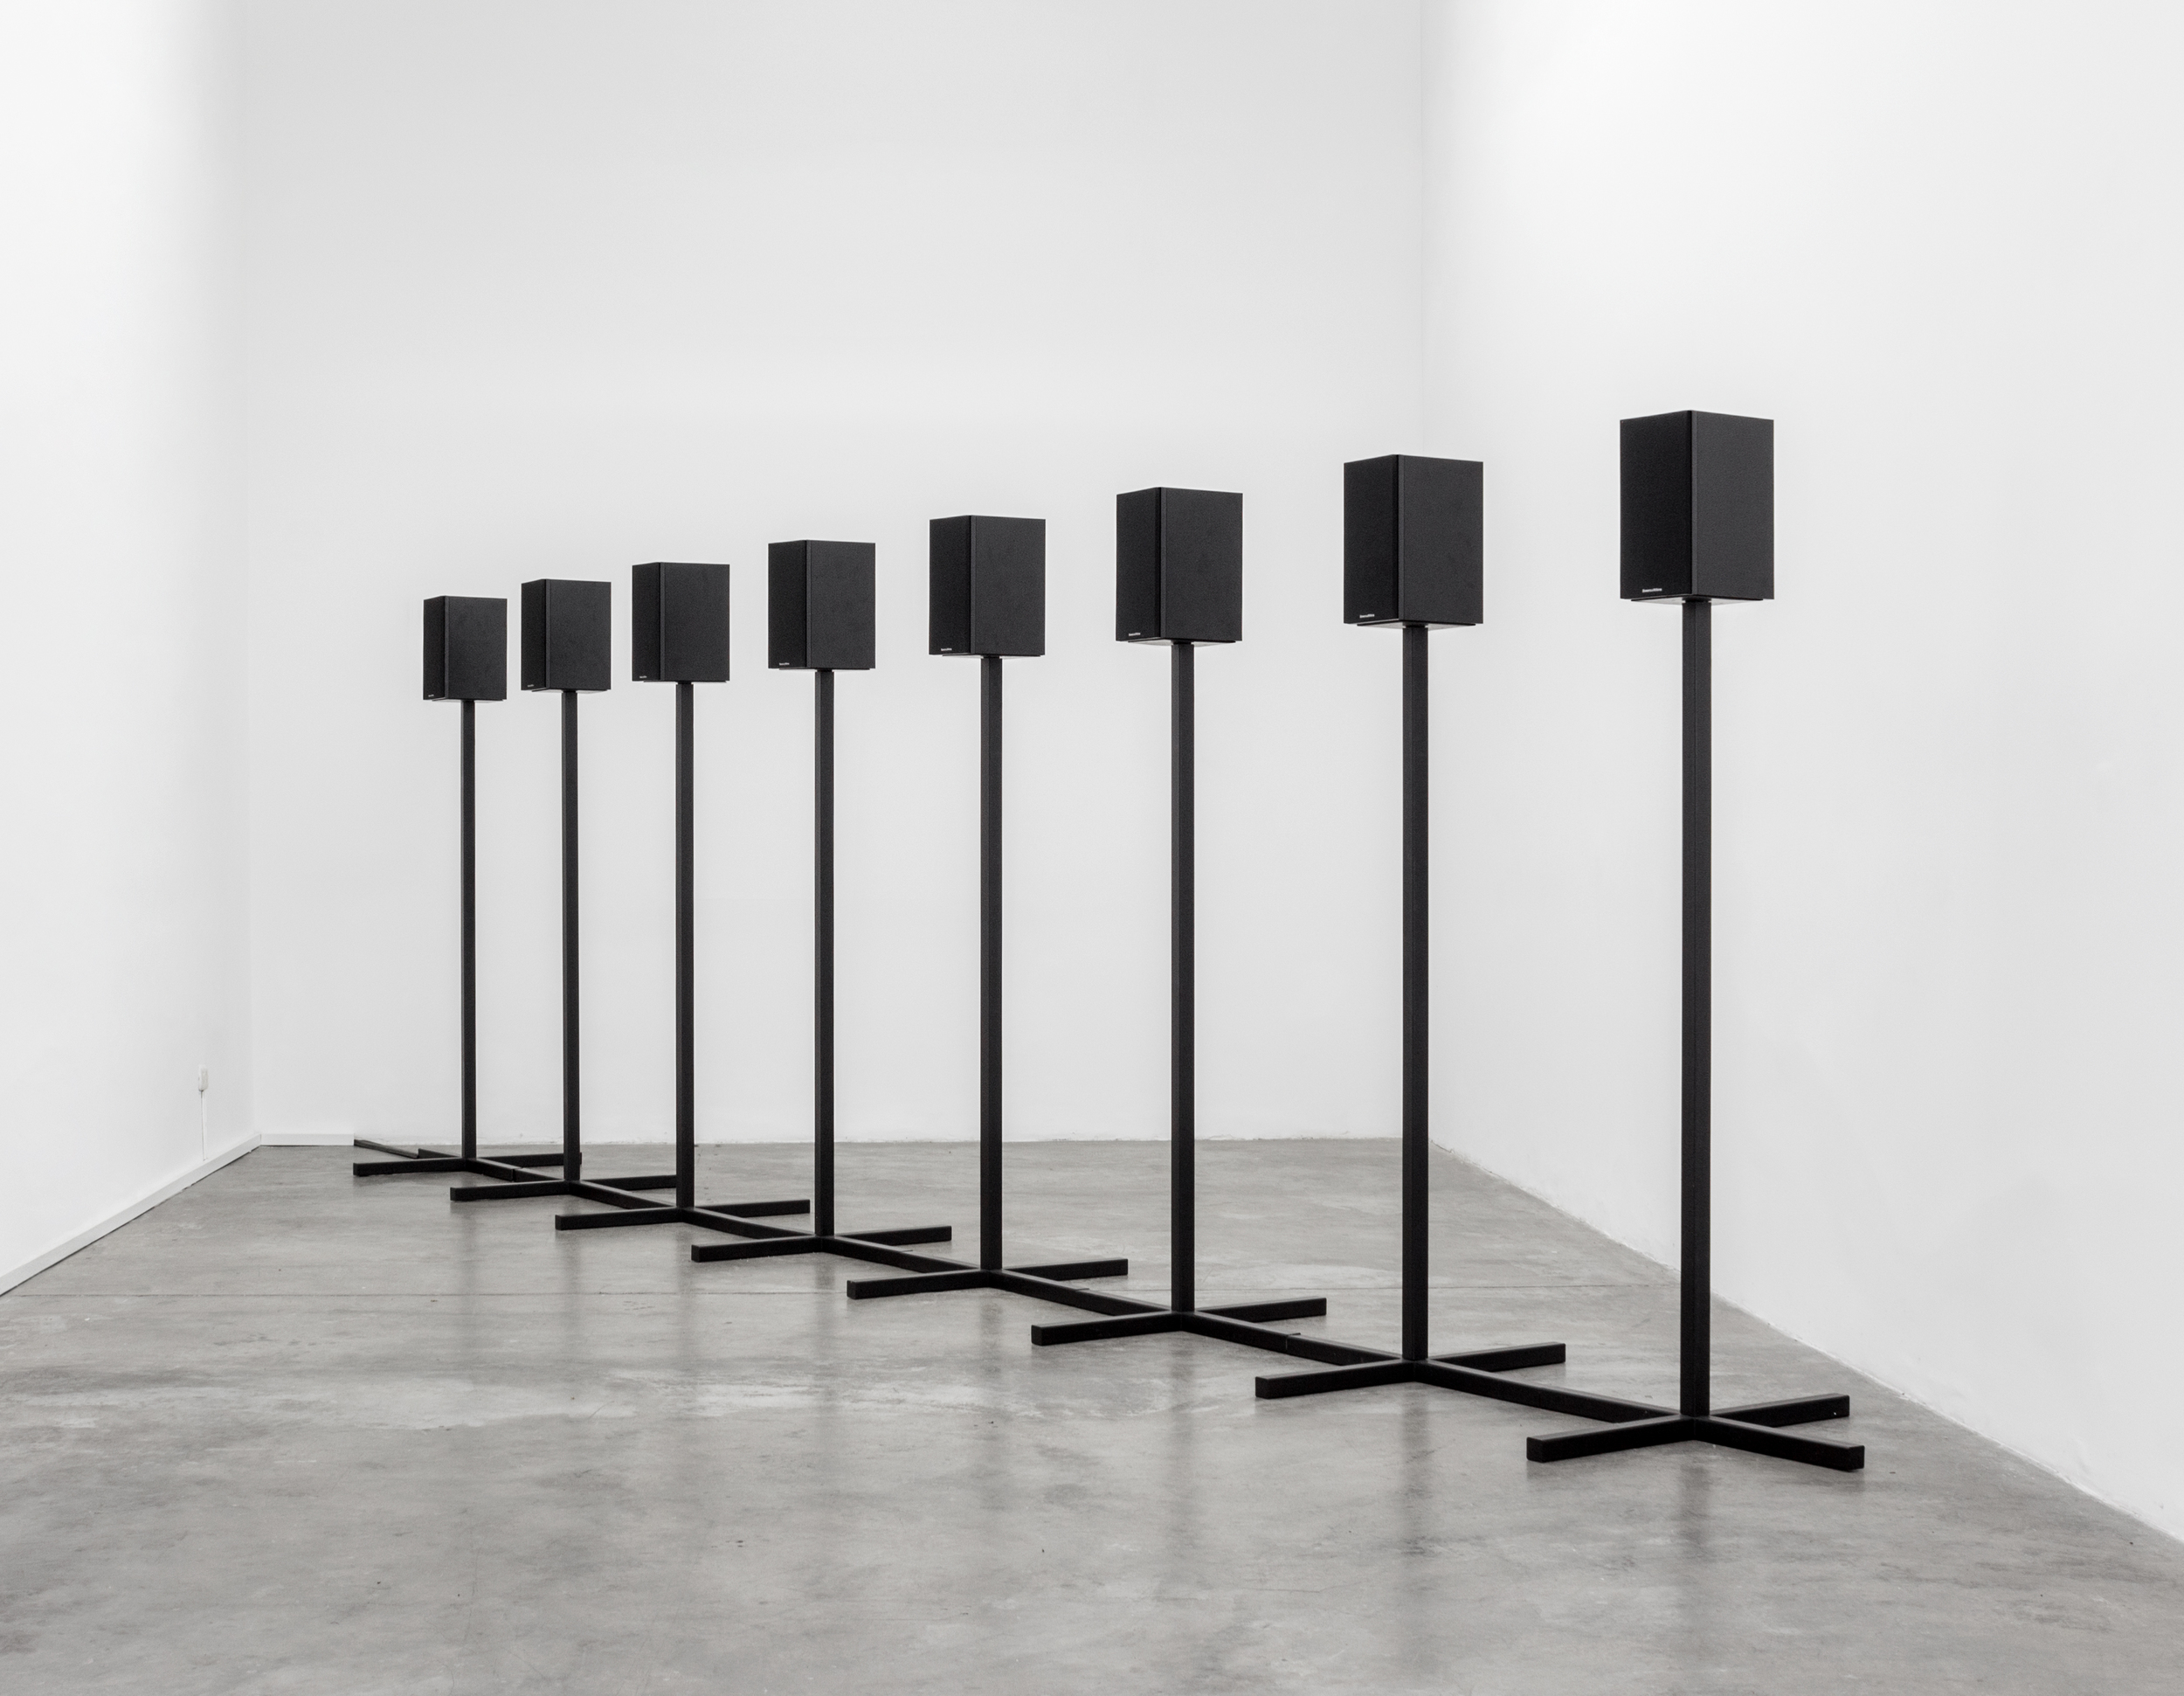 Andrea Galvani   ©   2012/2016  ,   A Cube, a Sphere, and a Pyramid #1  . Ultrasonic audio track (1 hour 20 minute loop), 8 loudspeakers, two-part custom black metal speaker stands, and amplifier. Installation view at Revolver Galeria, Lima.